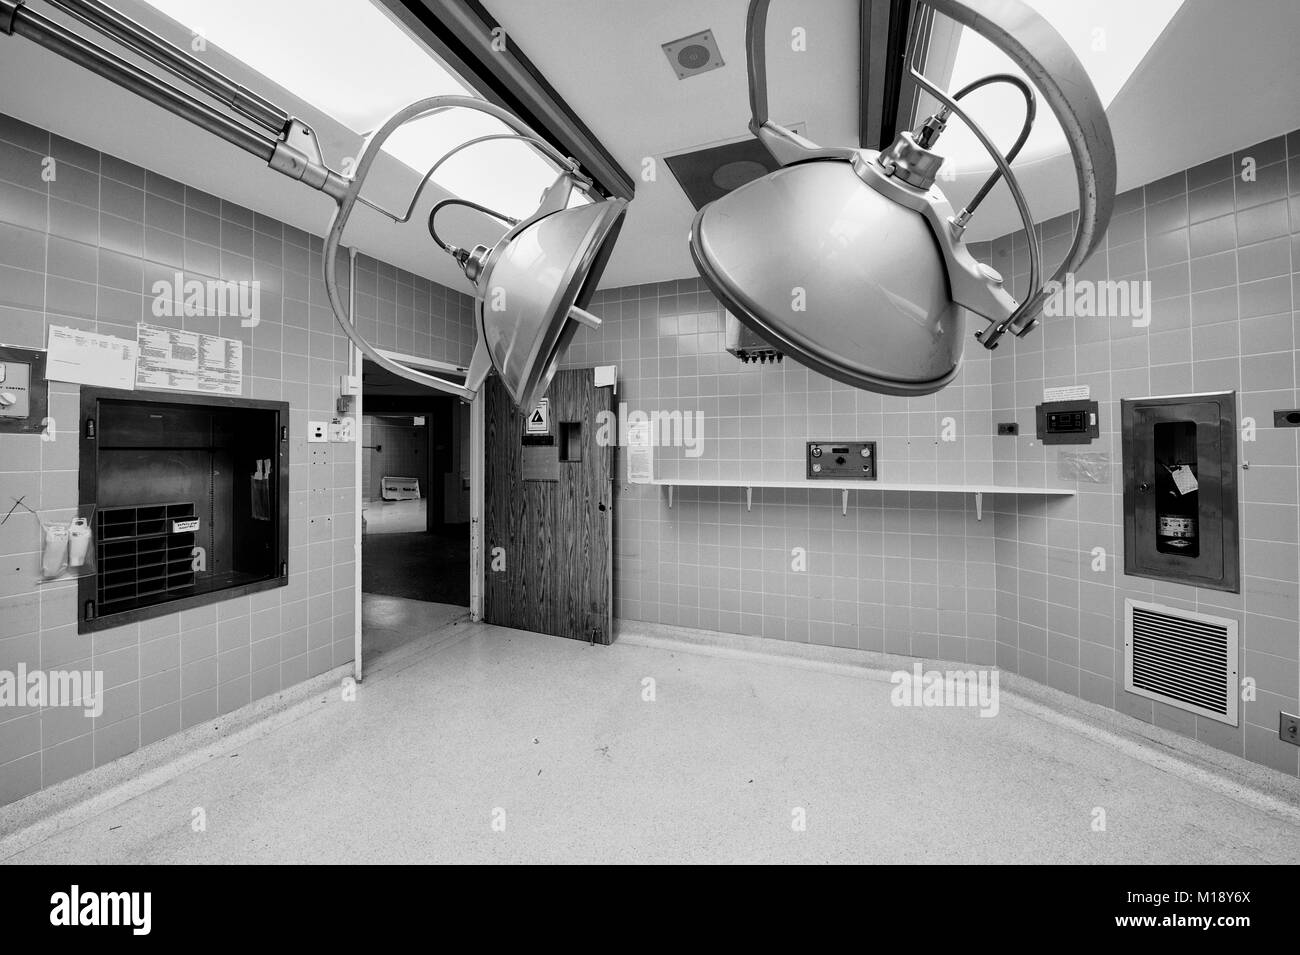 Operating Room Black and White Stock Photos & Images - Alamy